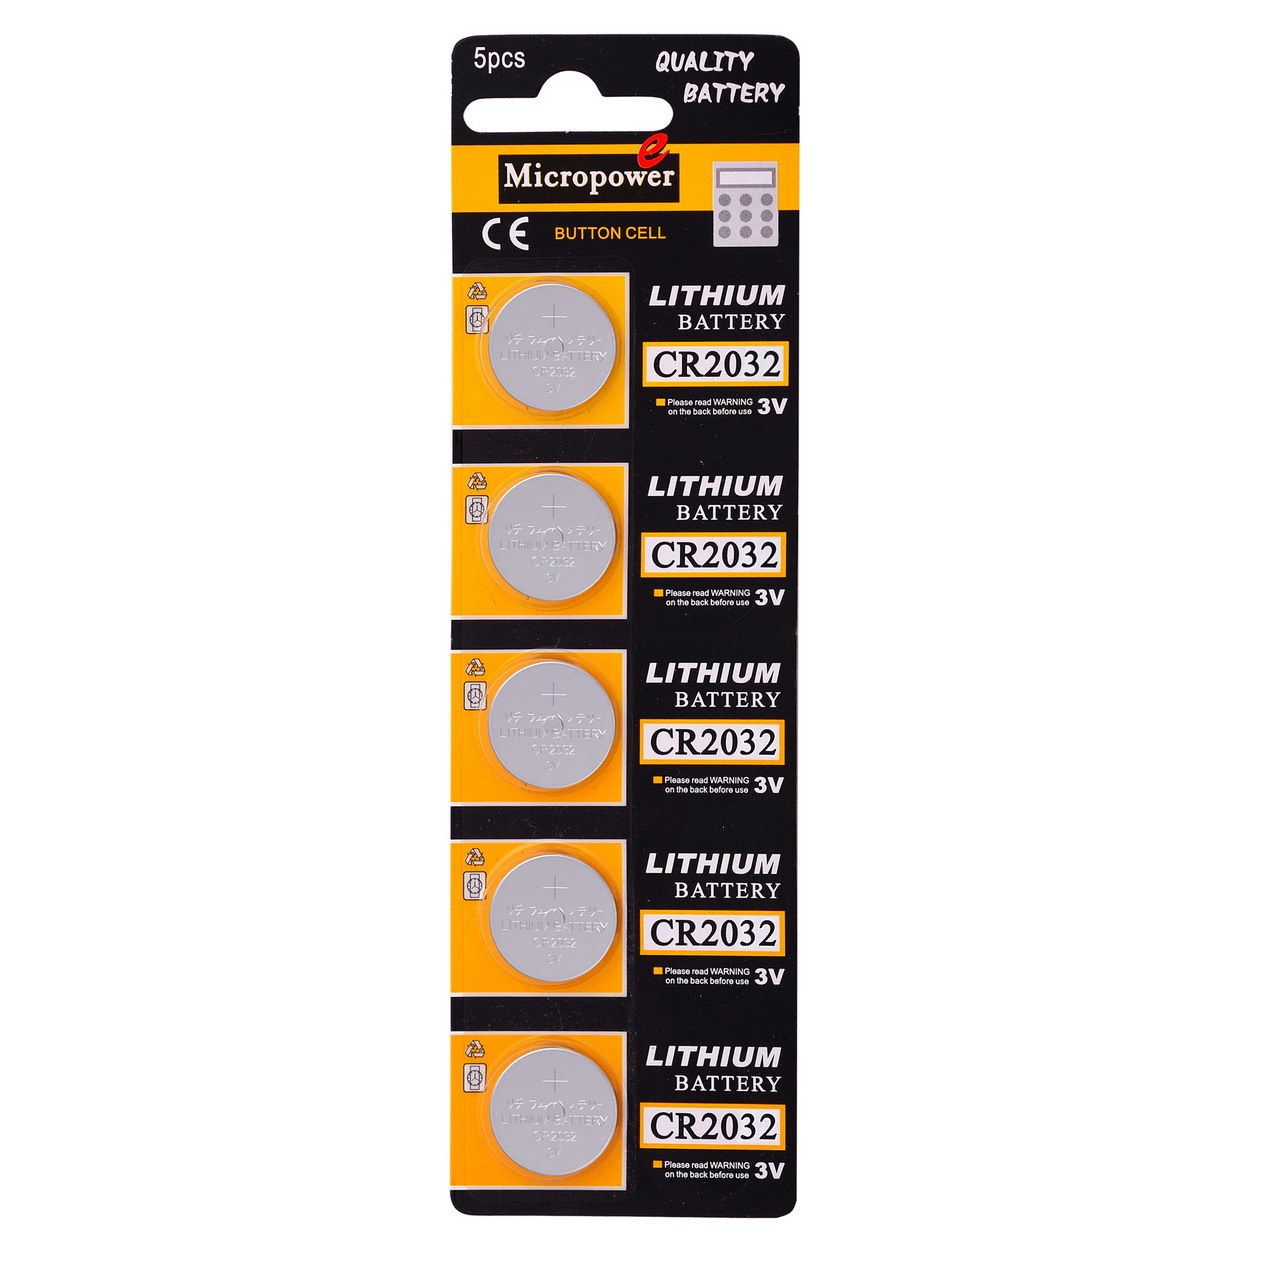 Sleek Hearing Aid Batteries Walgreens Lithium Battery Walgreens Herbal Interactions Celexa Maxell Cr2025 3v Battery Walmart Panasonic Cr2025 3v Battery Walmart dpreview Cr2025 Battery Walmart